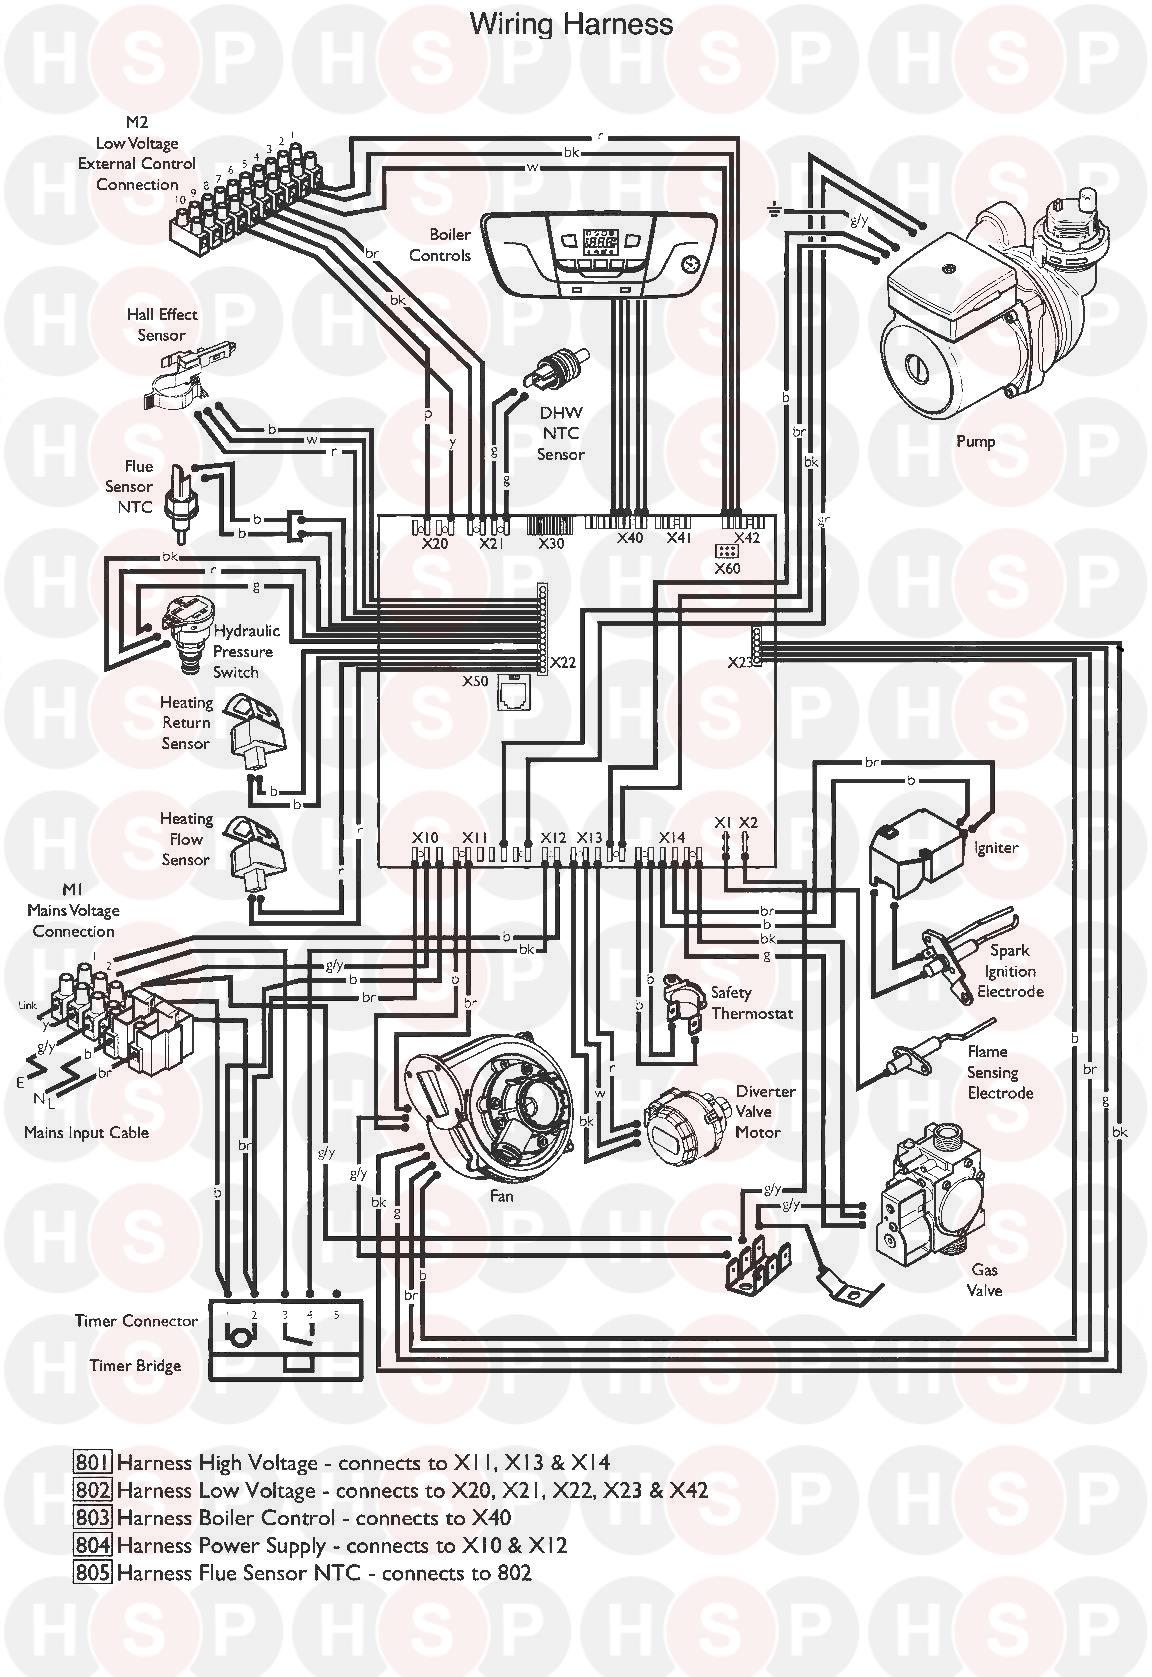 baxi ecoblue 28 combi wiring harness diagram heating spare